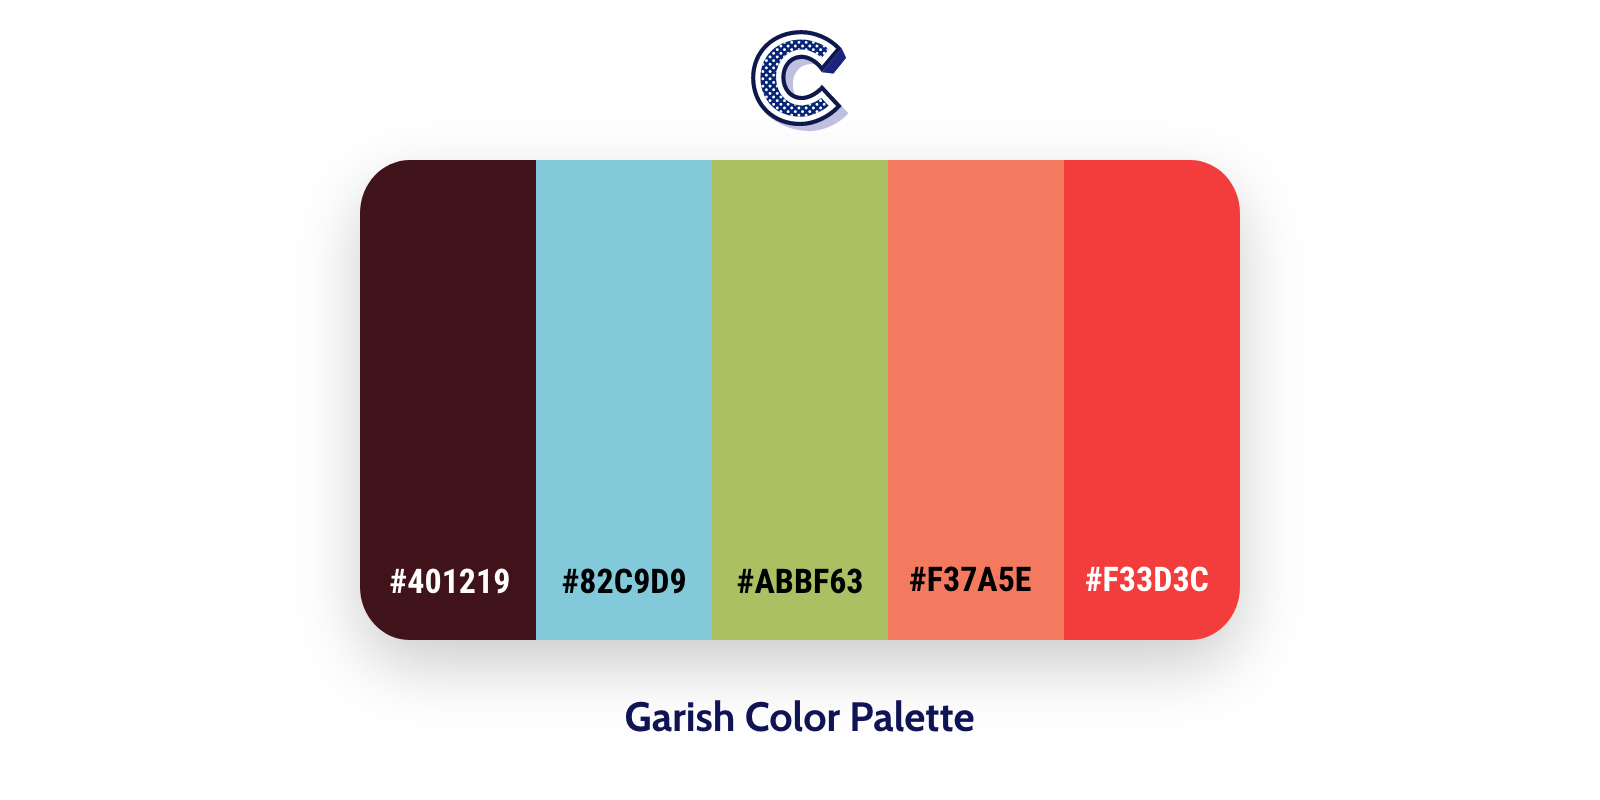 The featured image of garish color palette